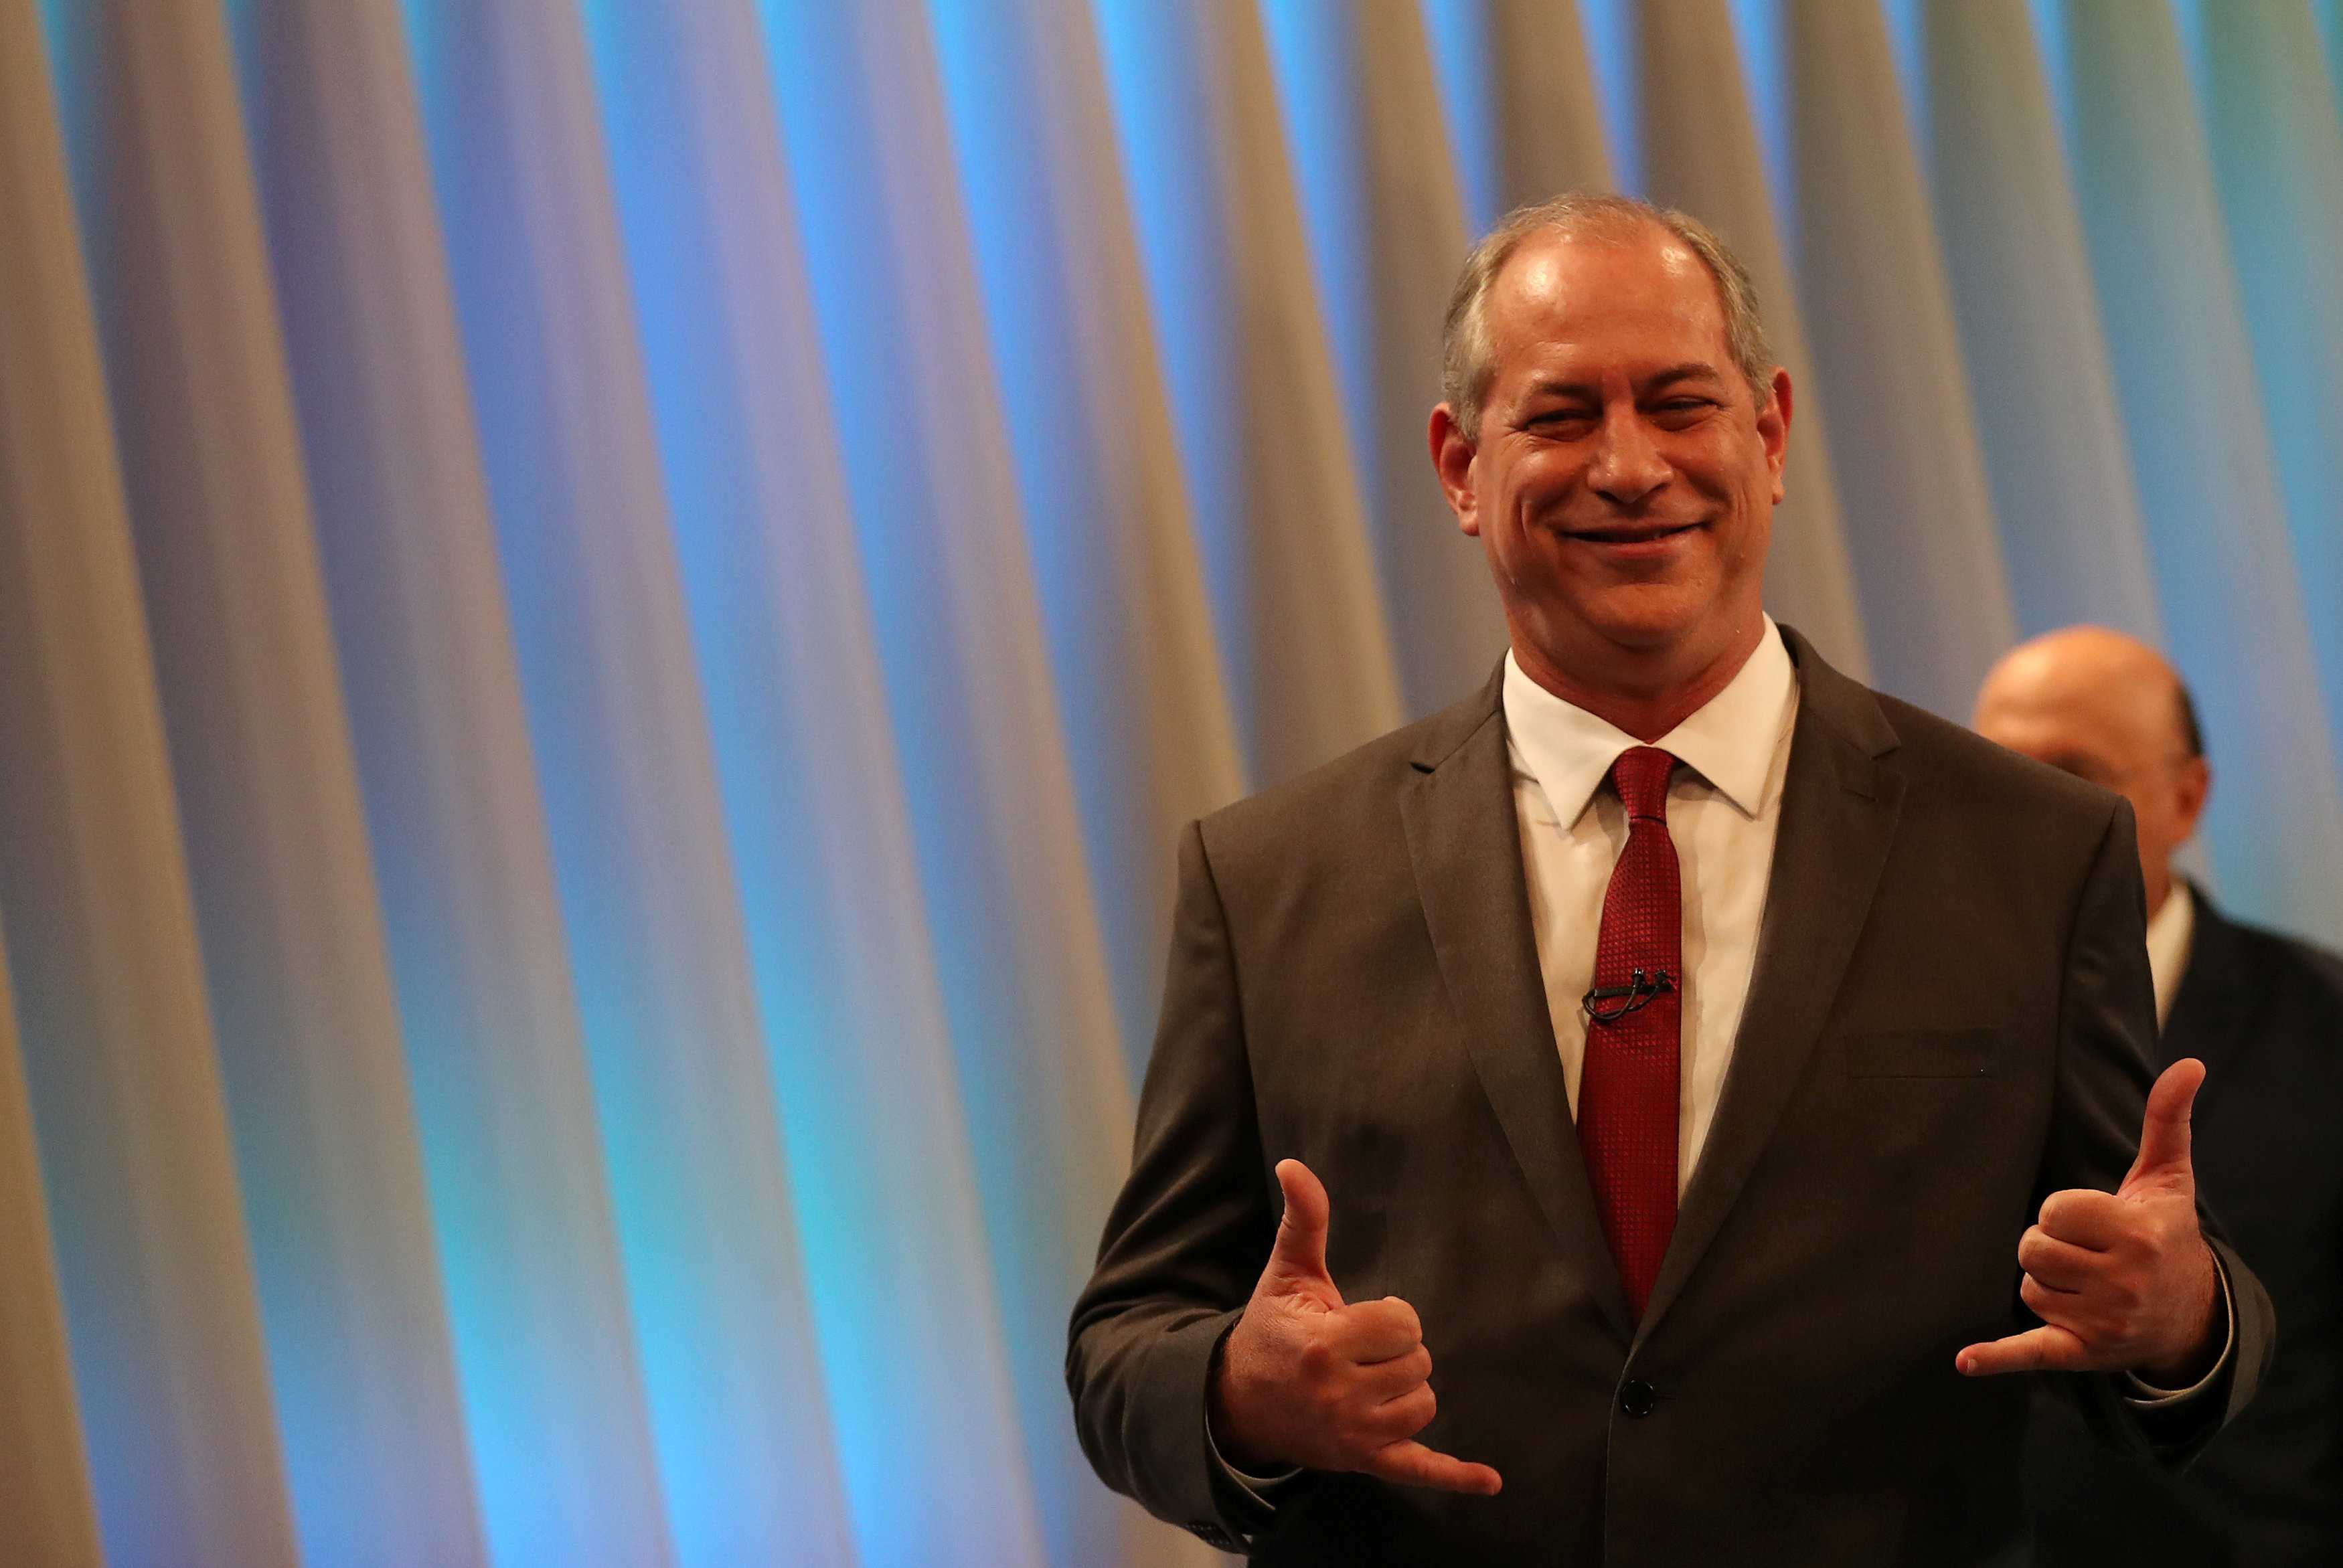 Presidential candidate Ciro Gomes is pictured ahead of a televised debate in Rio de Janeiro hang loose